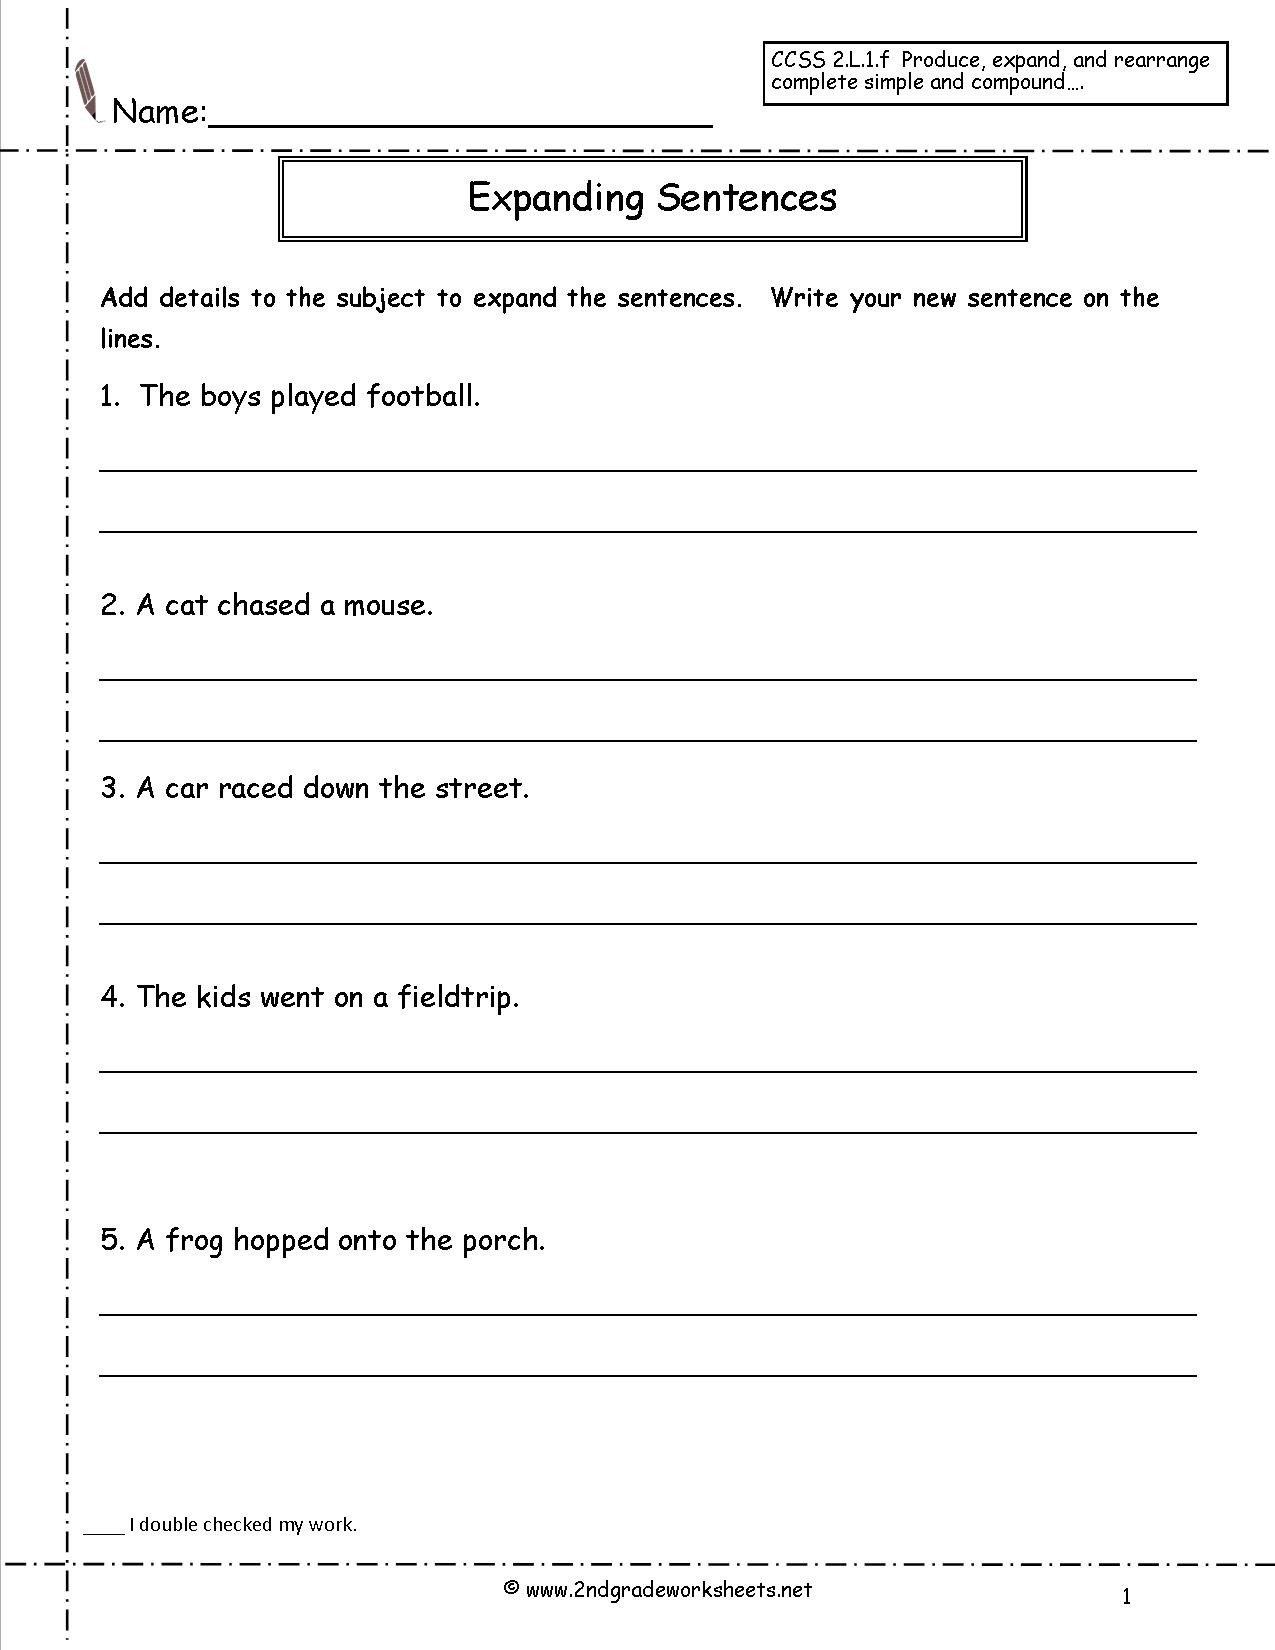 Complete Sentences Worksheets 4th Grade Reconciliation Worksheets for 4th Grade